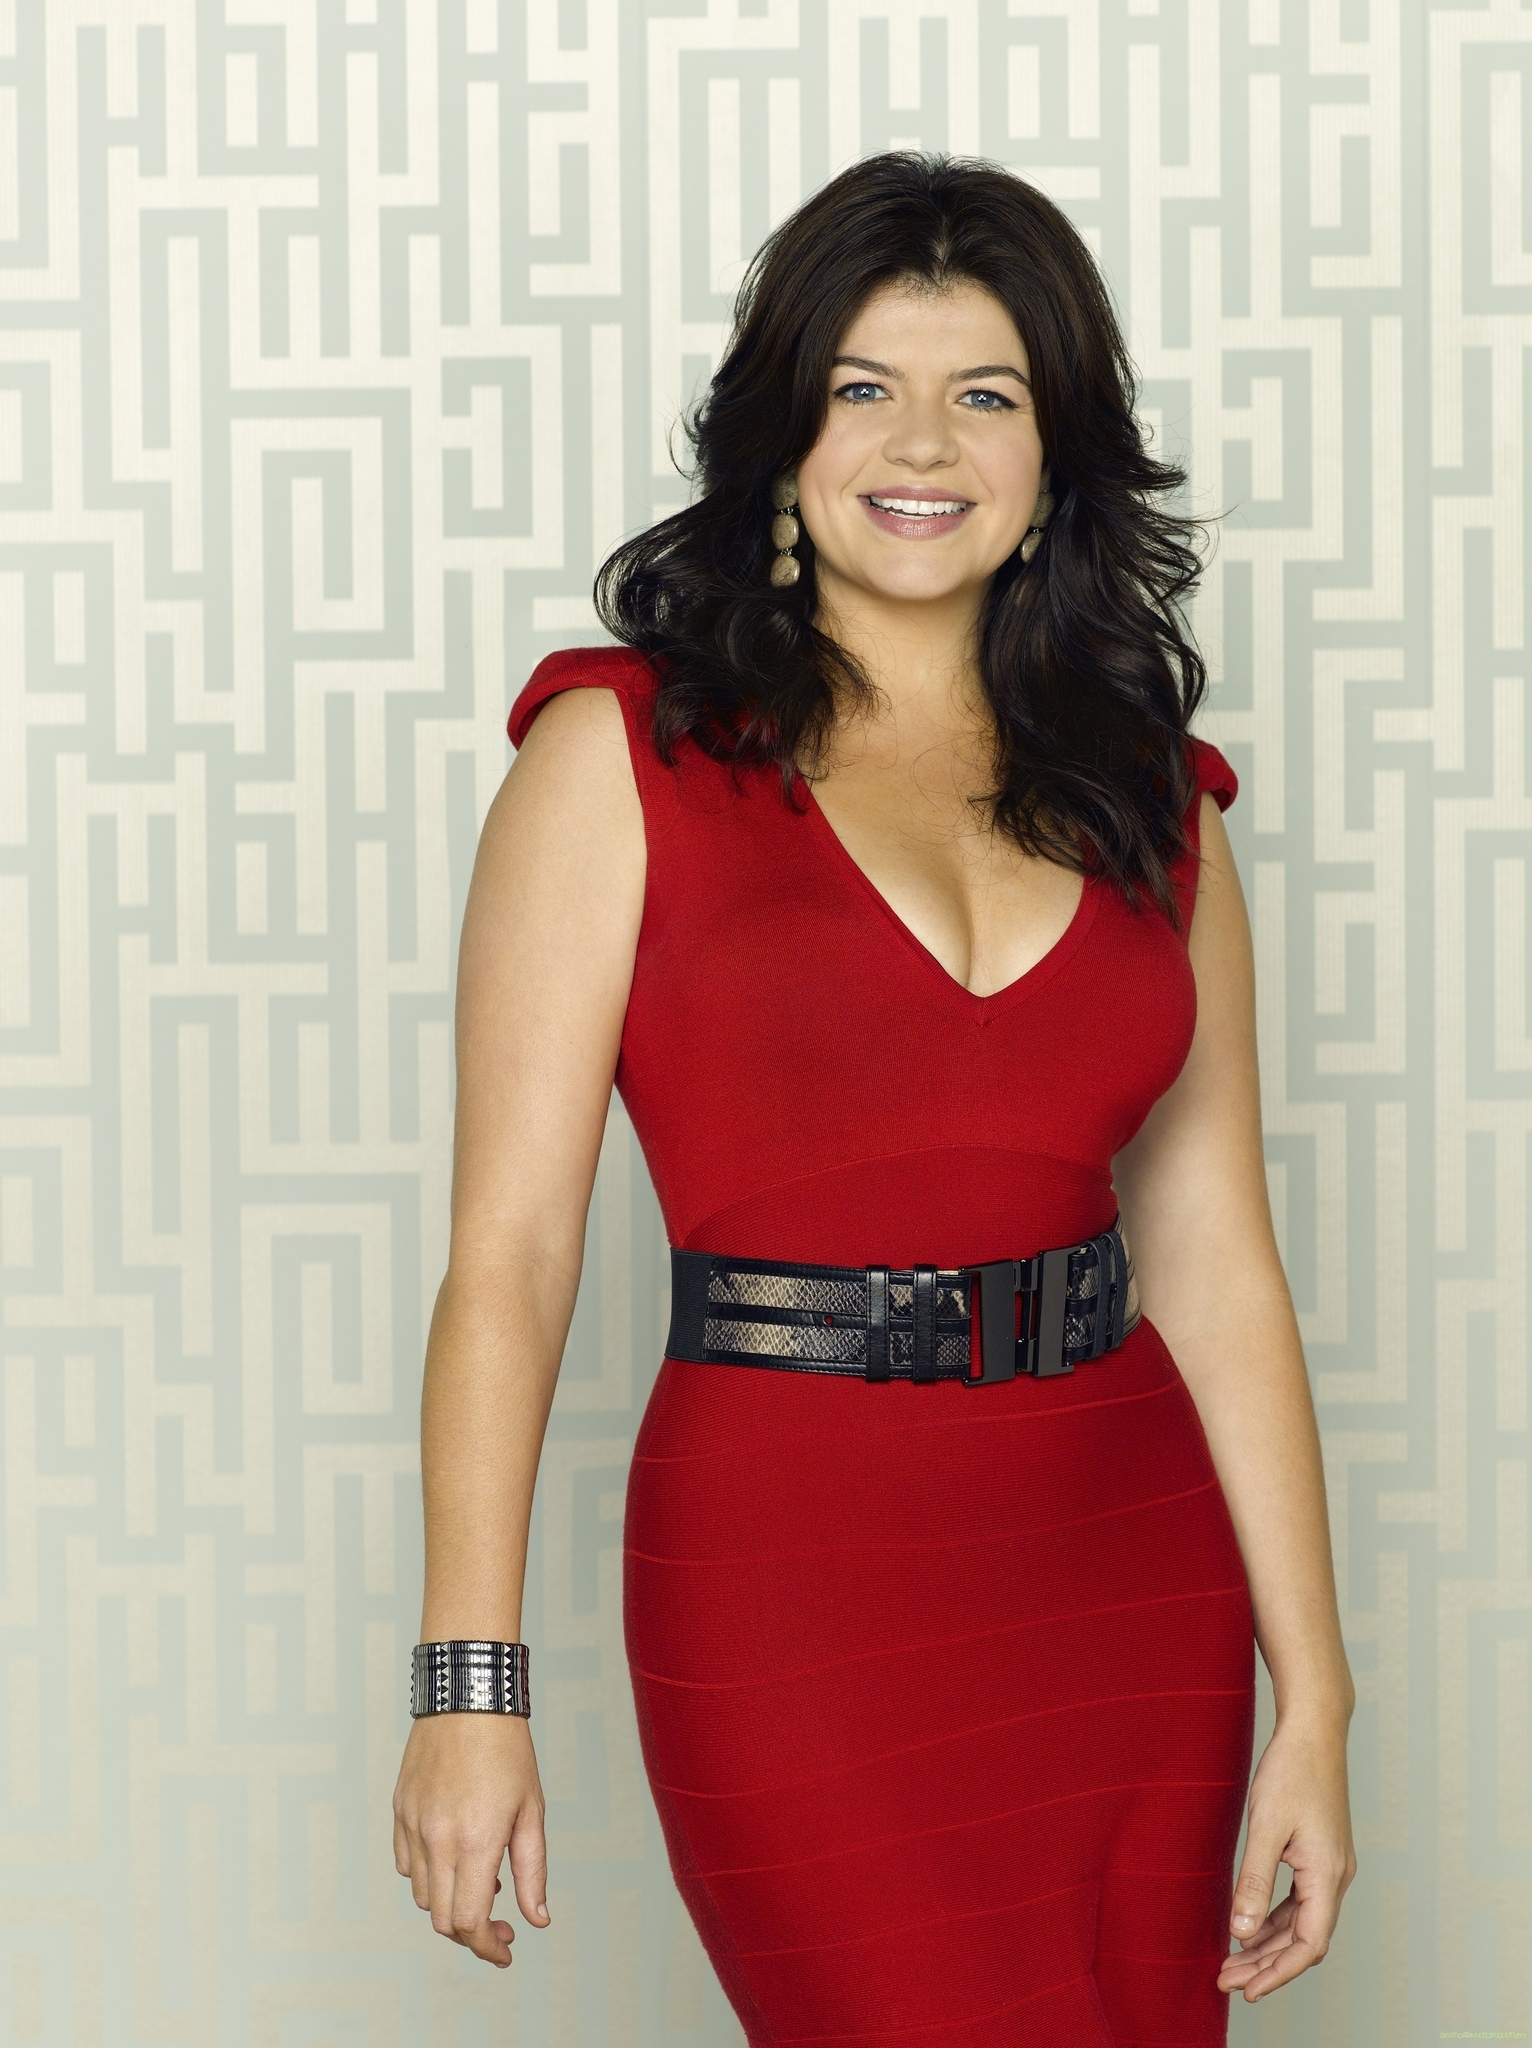 Discussion on this topic: Natalie Press, casey-wilson/